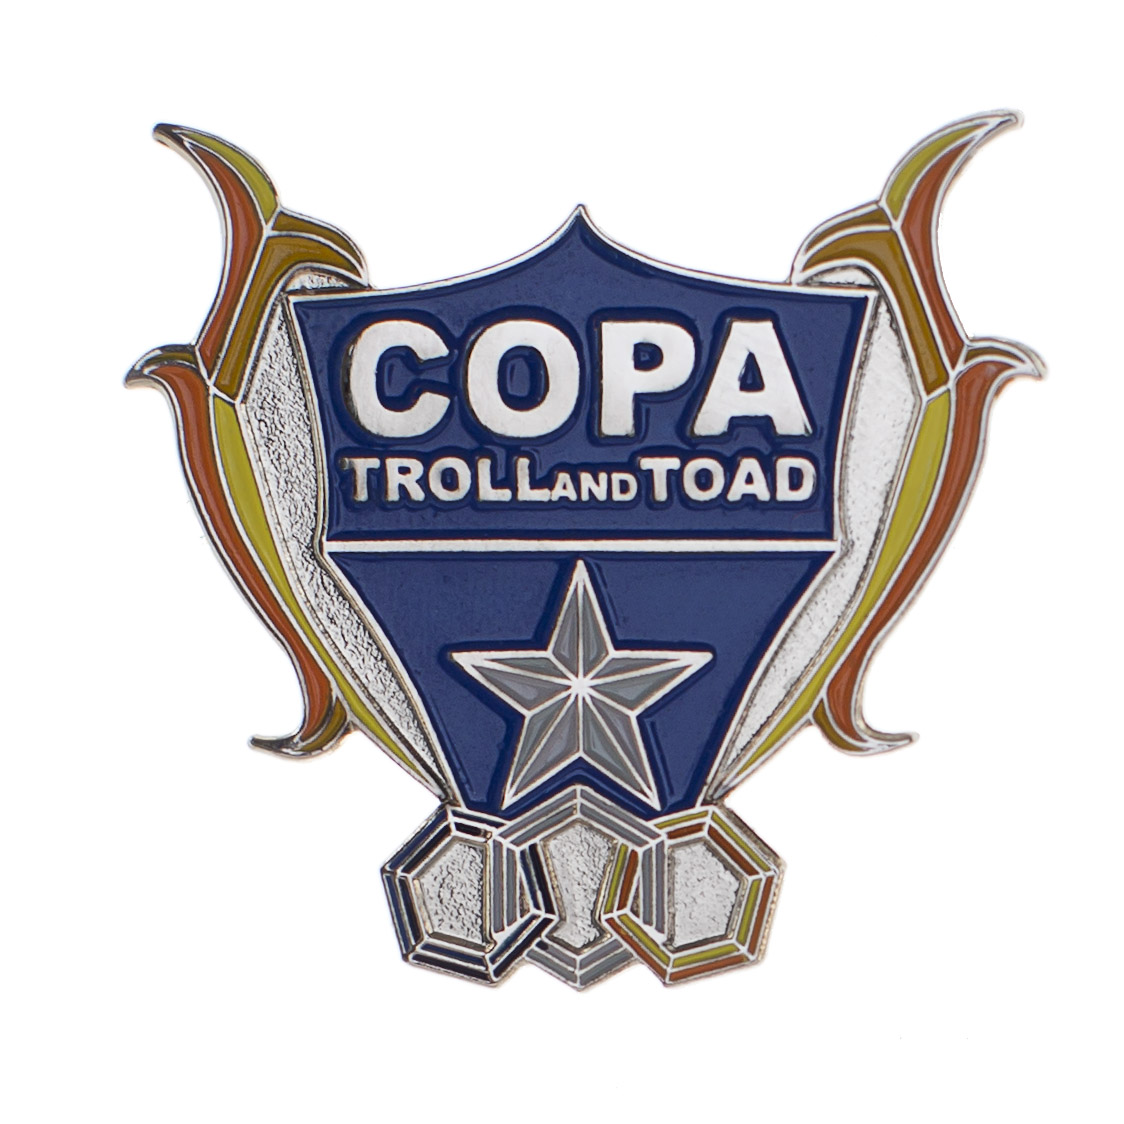 COPA Troll and Toad